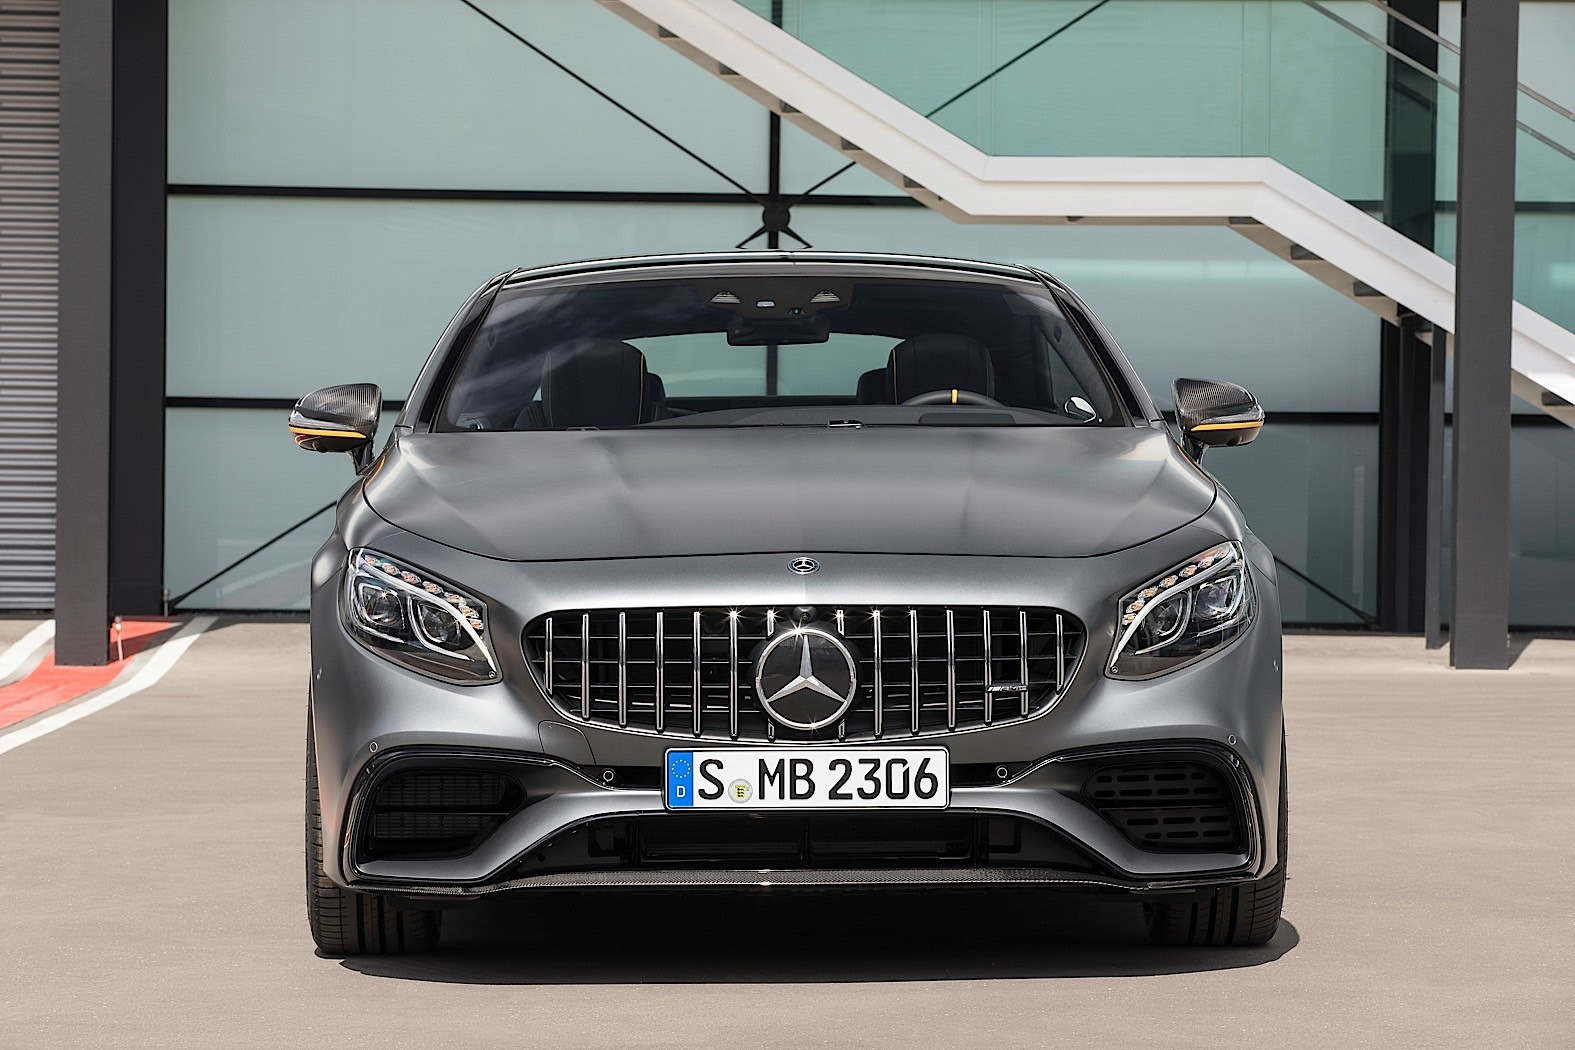 2018 mercedes amg s63 and s65 coupe cabrio facelifts get panamericana grille autoevolution. Black Bedroom Furniture Sets. Home Design Ideas